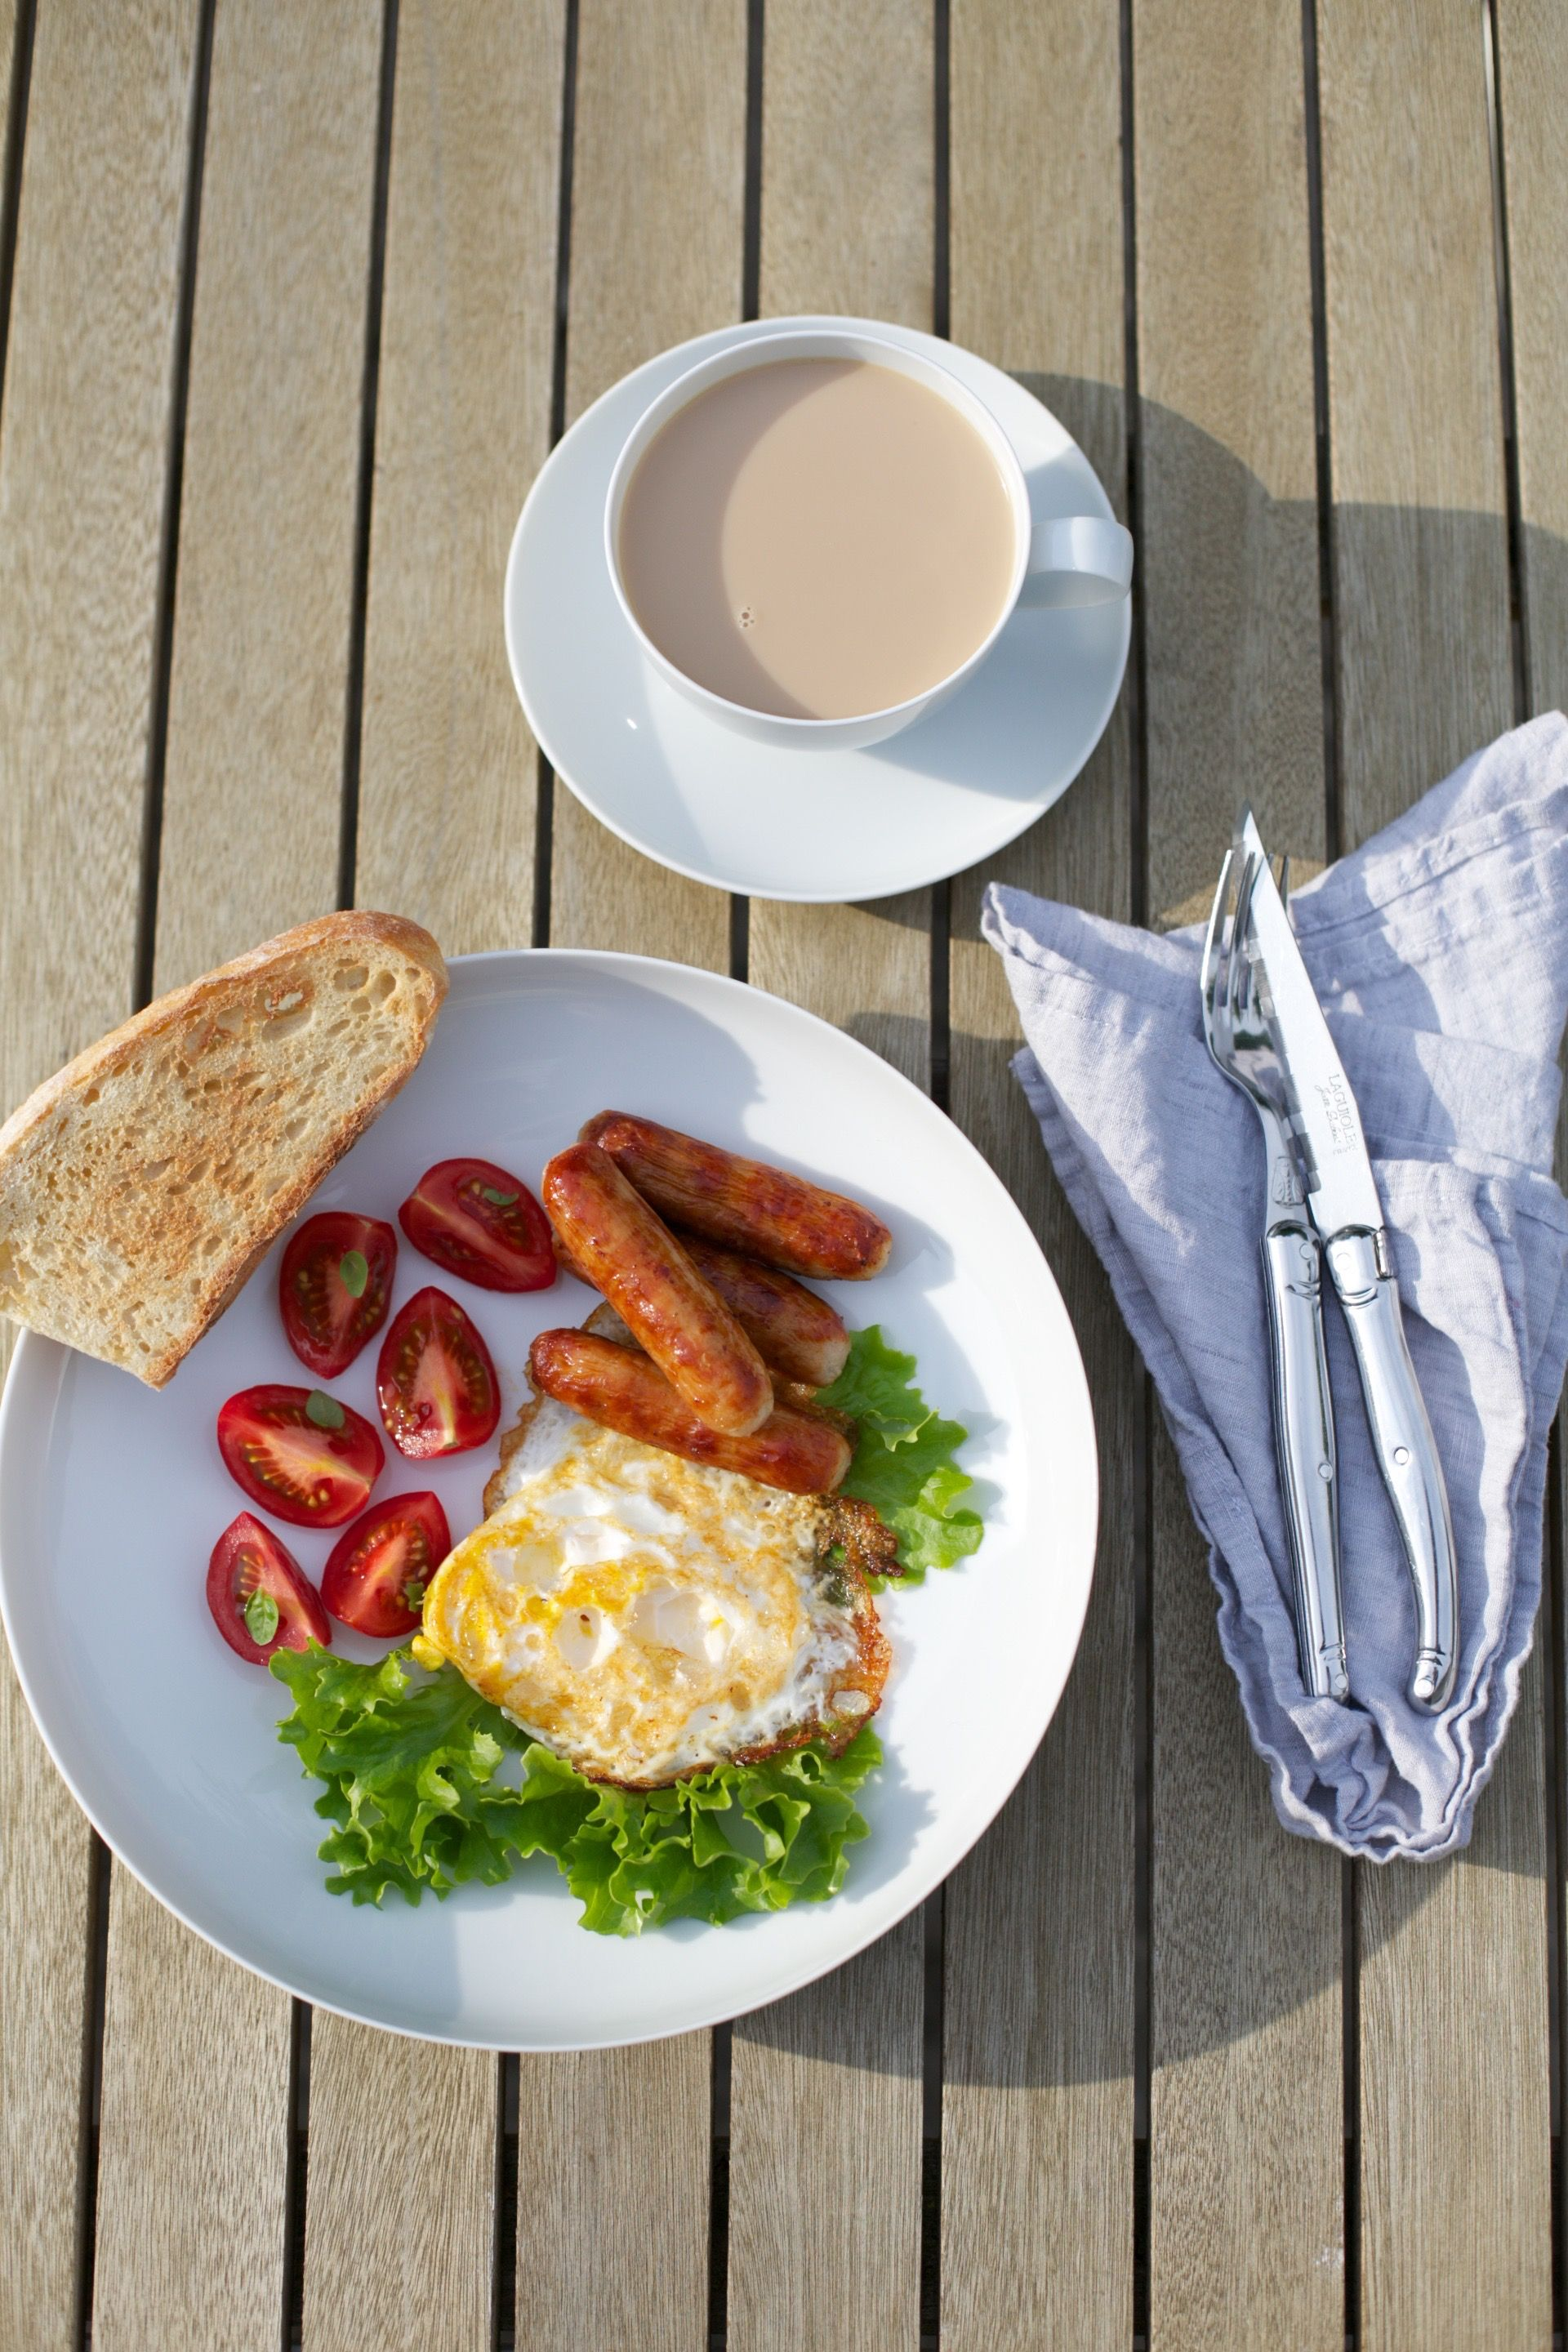 breakfast outside irish sausages bread coffee food homemade by Kasia Pohl